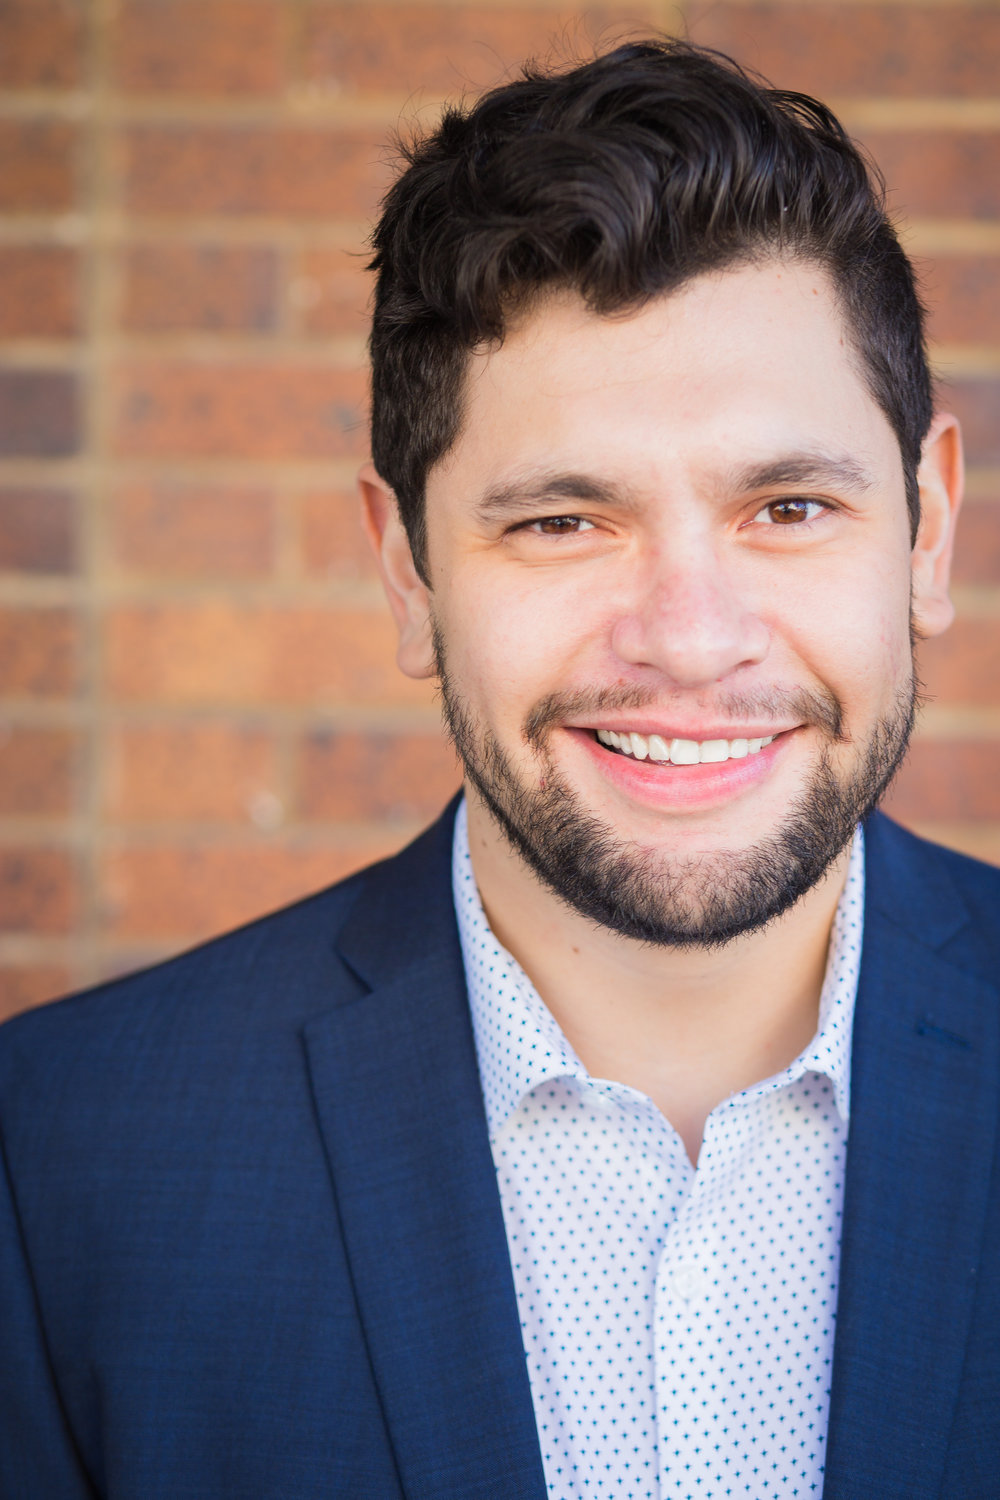 Brandon Morales - Bass-Baritone, has performed with Opera Companies all over the US stretching from Portland Opera in Oregon to Virginia Opera on the East coast. Career highlightsinclude the title role of Don Giovanni, Escamillo in Carmen, Polyphemus in Acis and Galatea, and Figaro in Le Nozze di Figaro. A graduate of Cincinnati College-Conservatory of Music, Morales has been highly active in the Ohio State area performing with Dayton Opera, NANO Works, Cincinnati Chamber Opera, Queen City Chamber Opera, Clermont Philharmonic/Opera, Cincinnati College-Conservatory, Cincinnati Opera, and most recently Opera Project Columbus. He has also been a featured soloist for Cincinnati Youth Symphony Orchestra and Voices of the Commonwealth chorus in Northern Kentucky. Other works include performing the role of Dr. Malatesta in Alamo City Opera's Don Pasquale, and the roles of Friedrich von Telramund in Lohengrin and the Dutchman in Die Fliegende Holländer in concert with the Wagner Society of Cincinnati, where he is now part of their blooming Wagner studio. Morales has recently completed his 1st year as an Emerging Artist with Virginia Opera, and will be returning in the fall for roles in 3 of the Opera's upcoming productions.